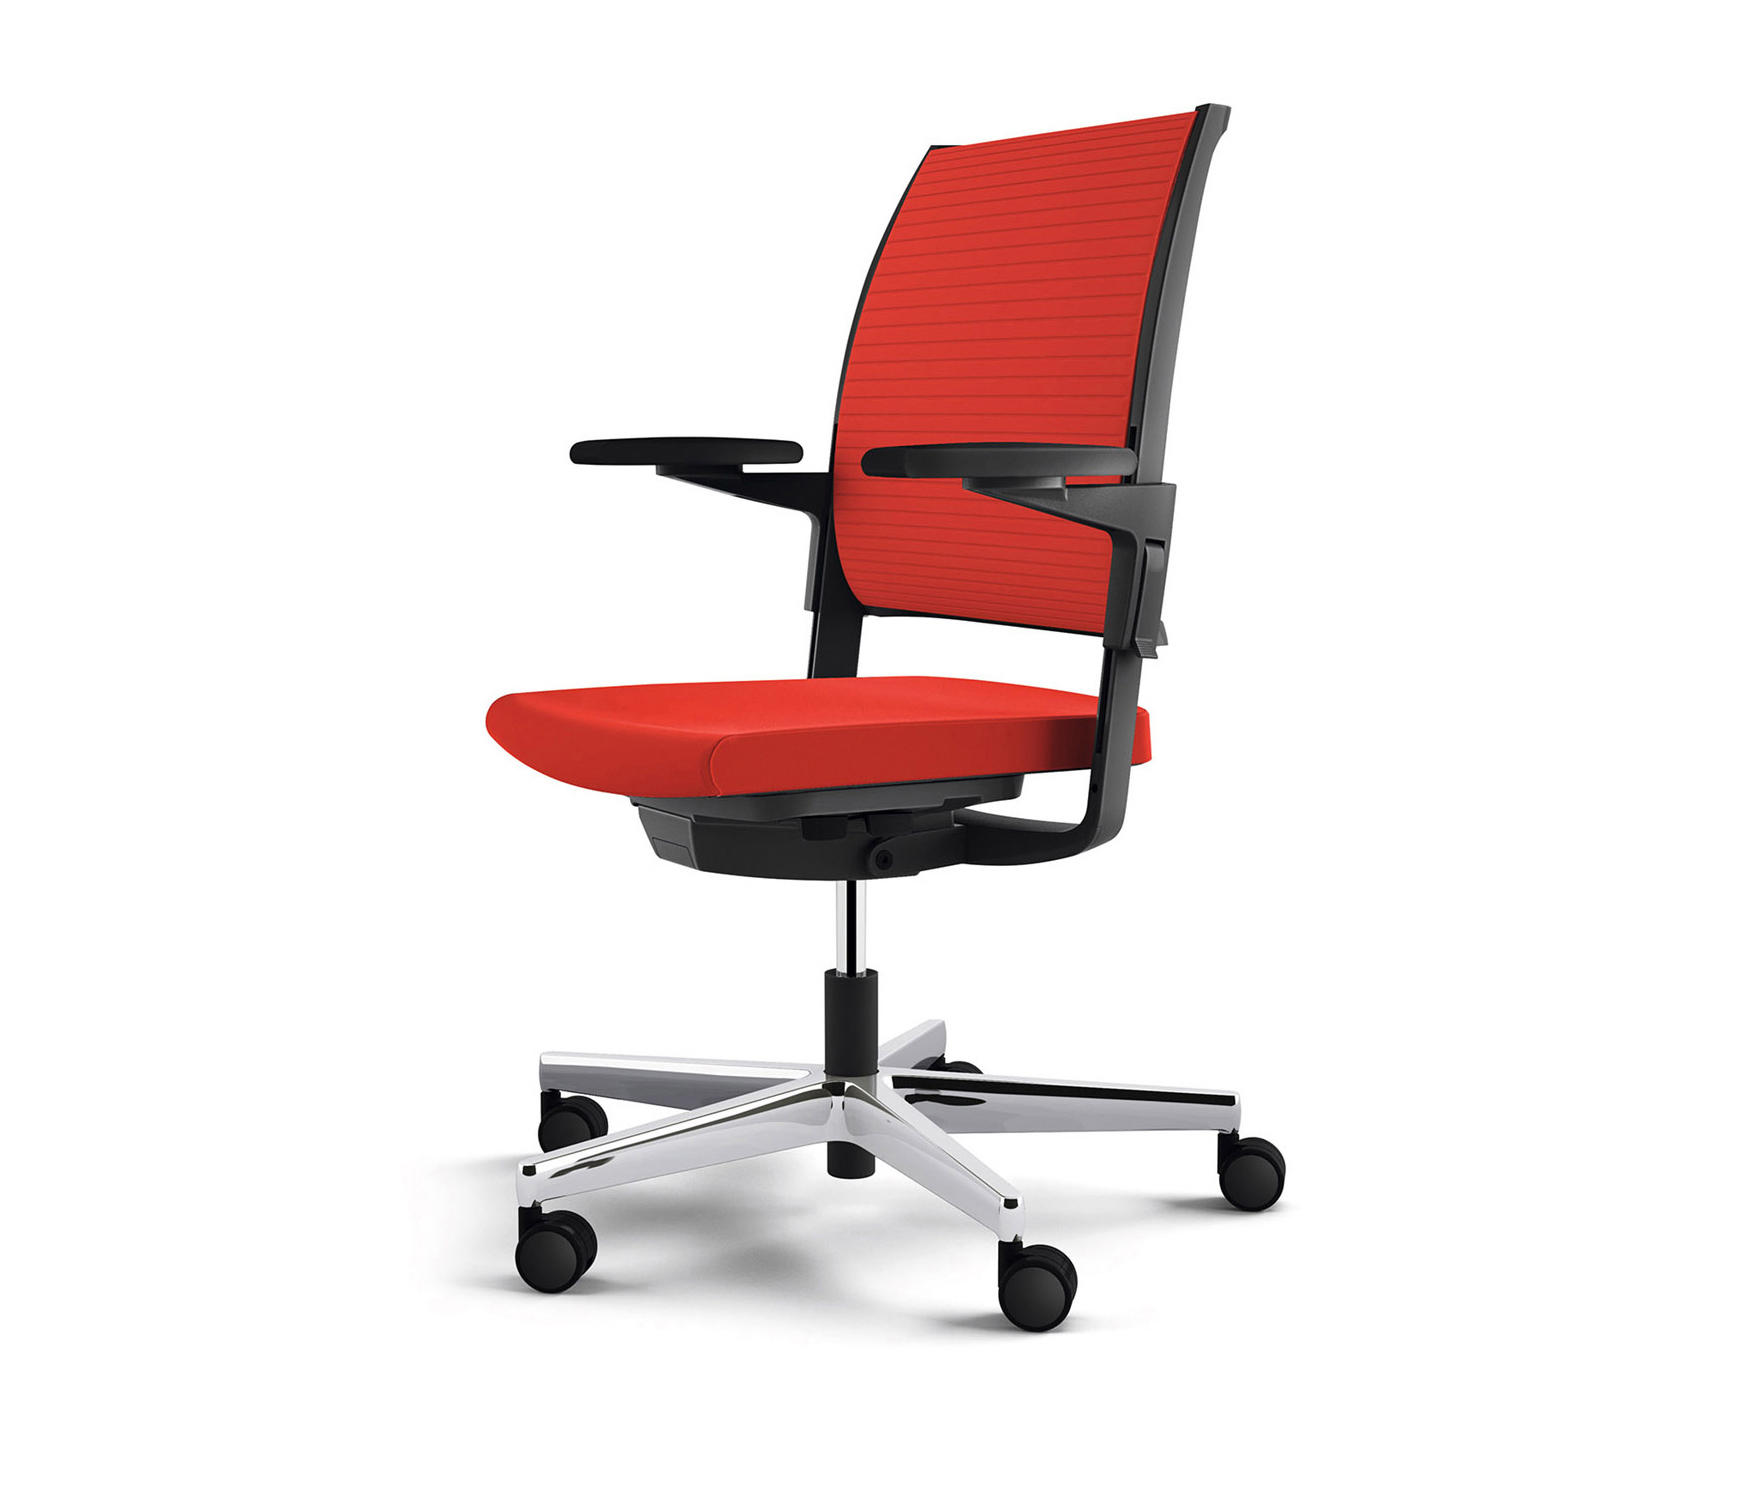 Valyou Swivel Chair Office Chairs From Konig Neurath Architonic